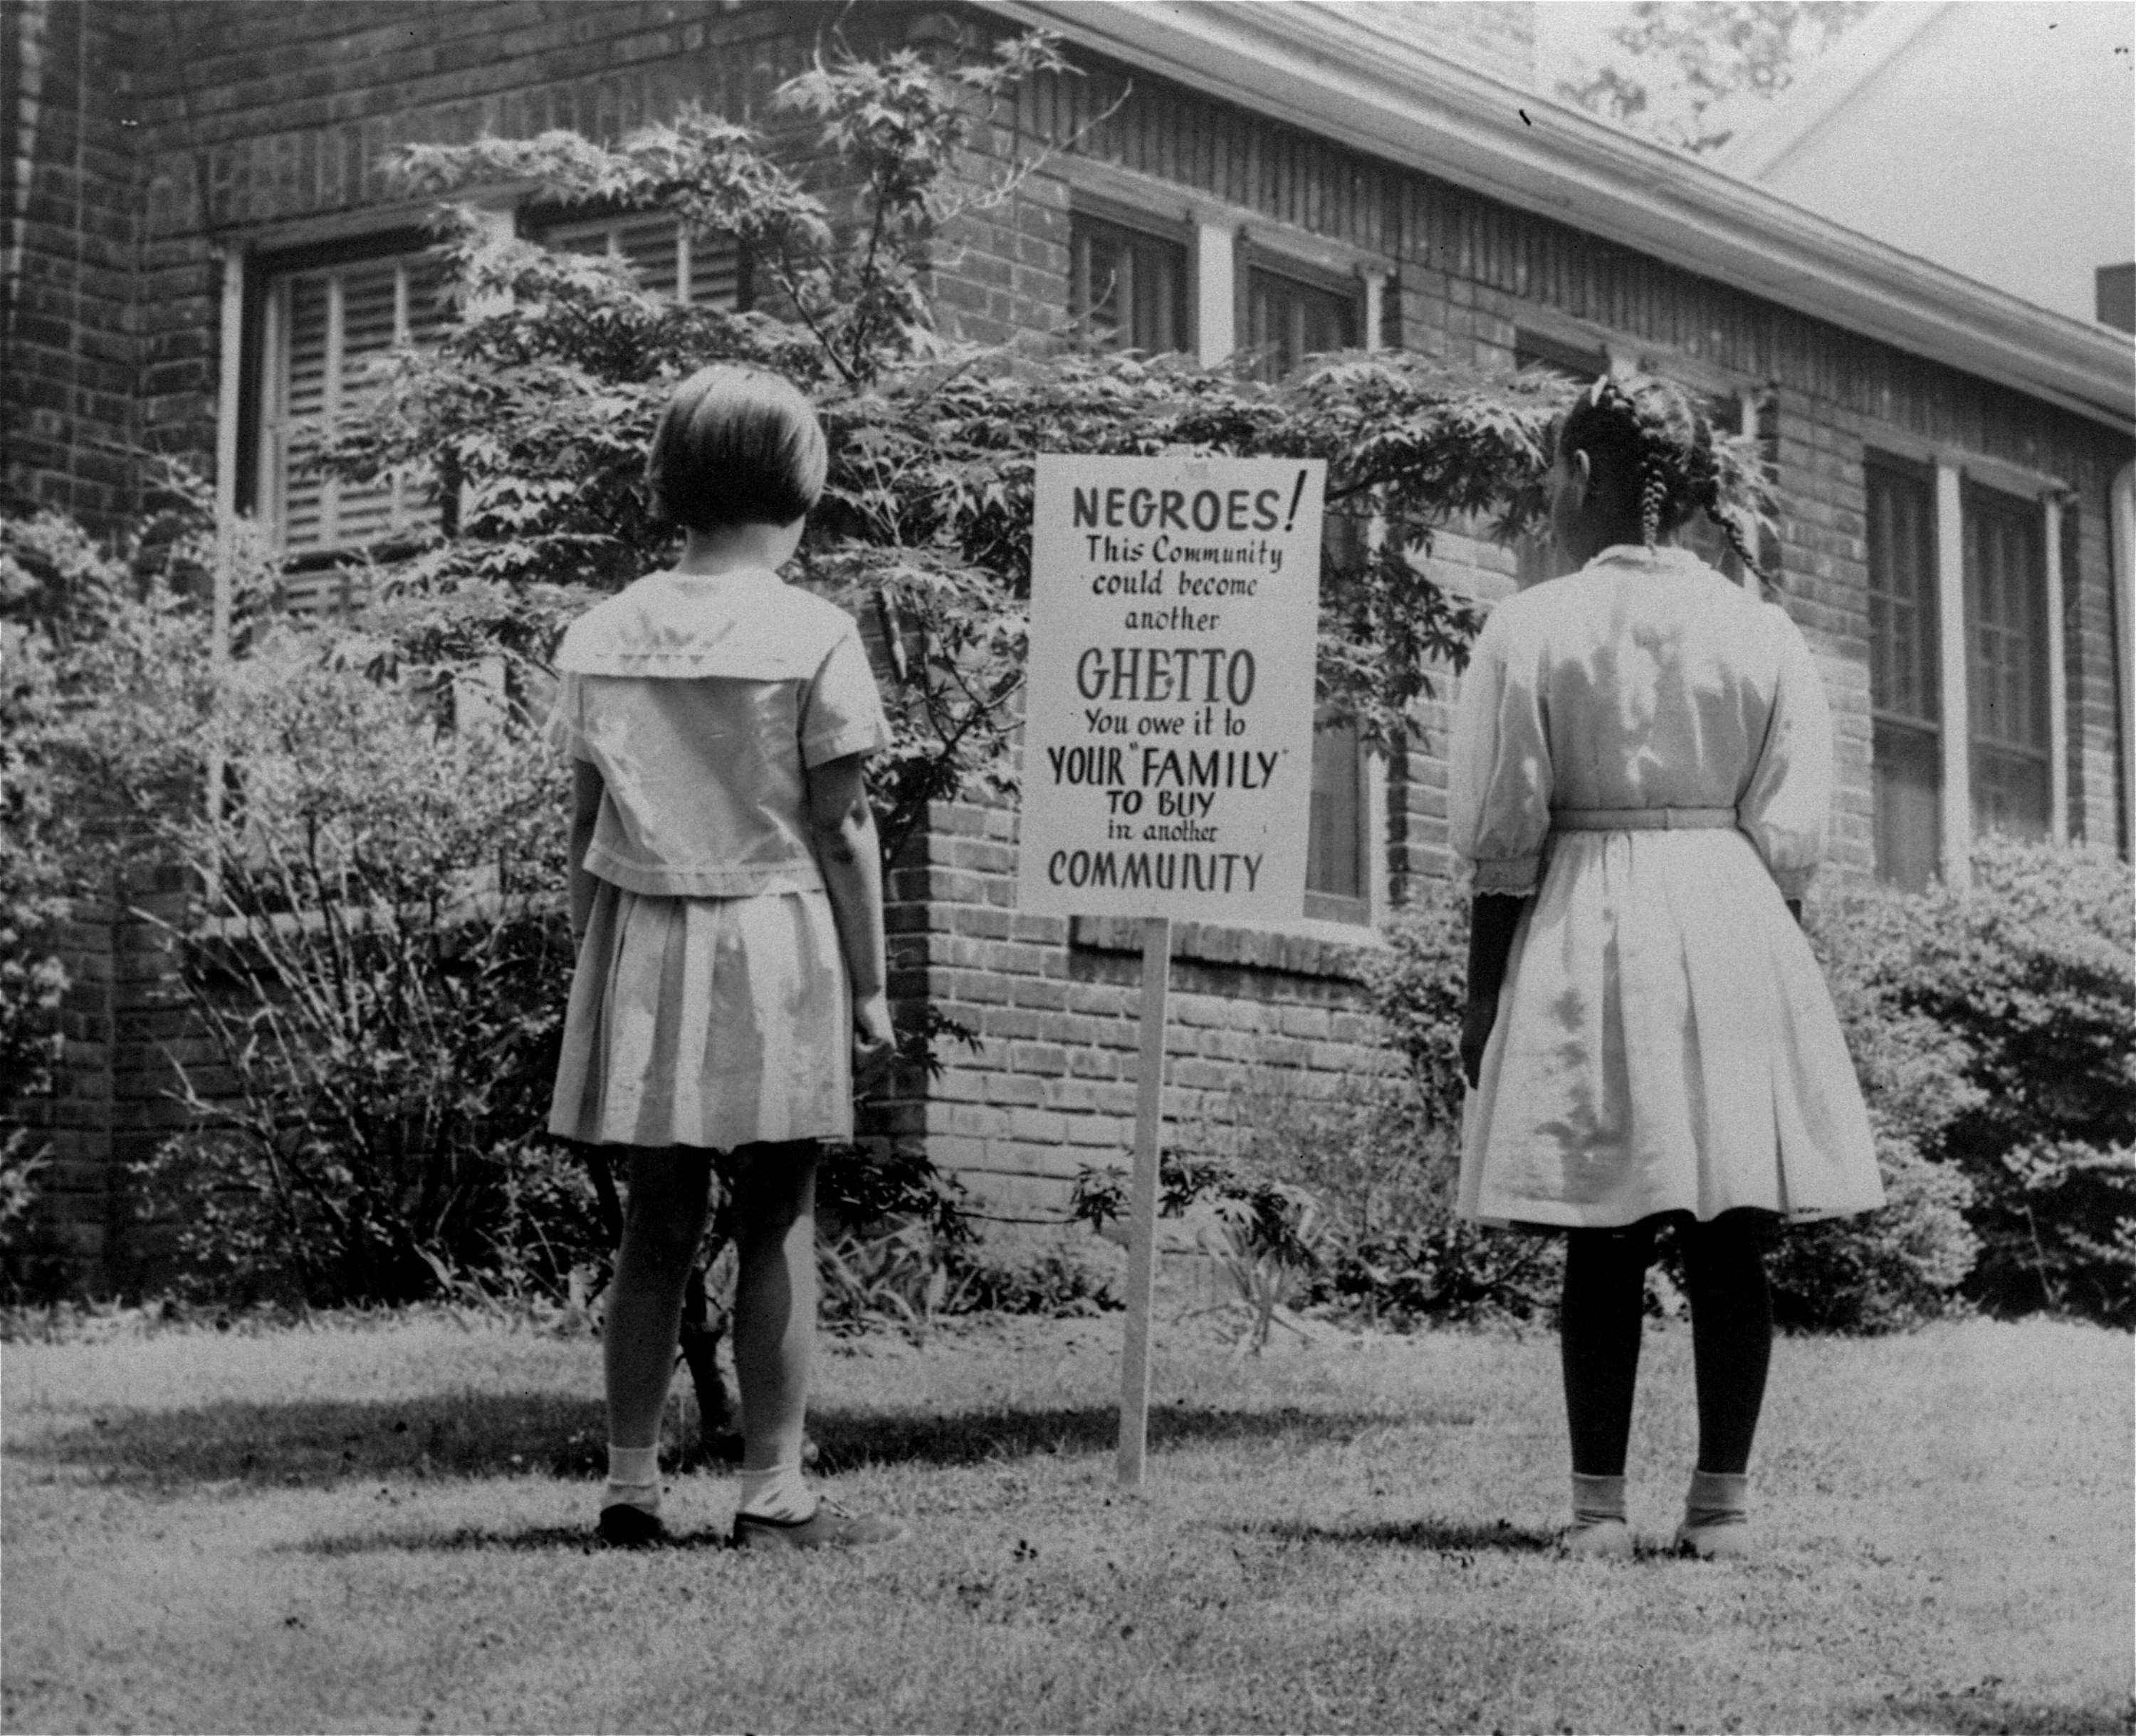 "An African American and a white girl study a sign in the integrated Long Island community of Lakeview, N.Y., April 1962. It reads ""Negroes! This community could become another ghetto. You owe it to your 'family' to buy in another community."" The sign was an attempt to keep African Americans from exceeding the number of whites who want to live in an integrated town. image: ap photograph"